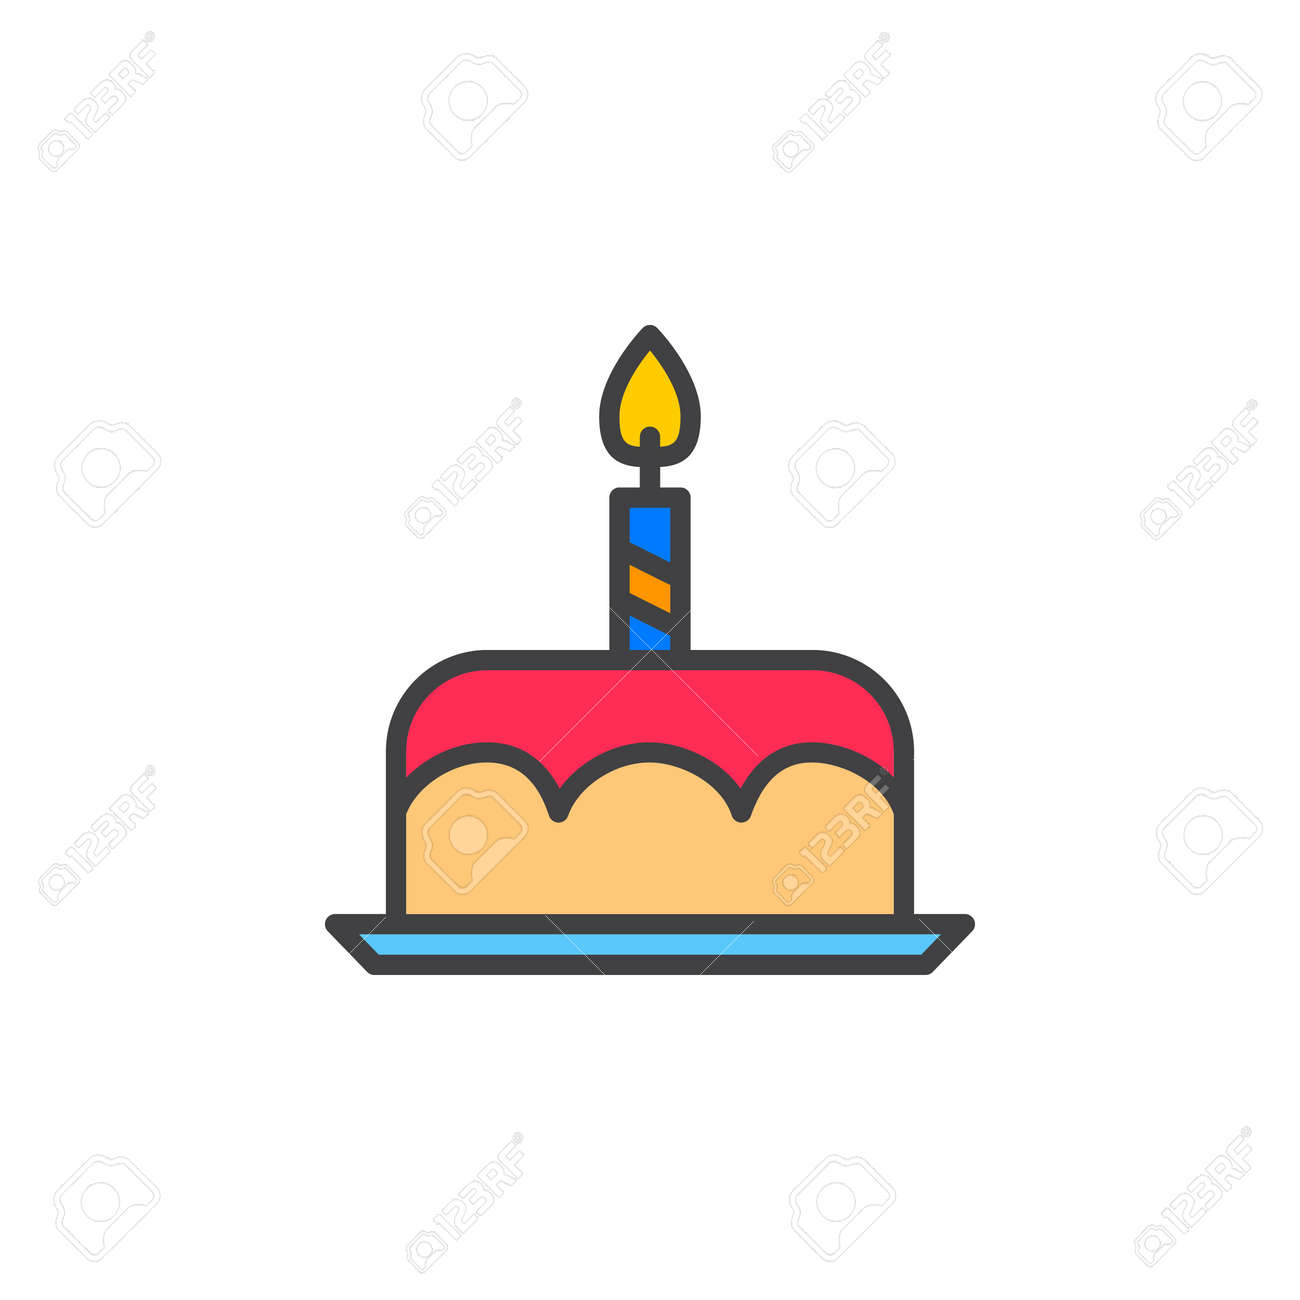 Birthday Cake Line Icon Filled Outline Vector Sign Linear Colorful